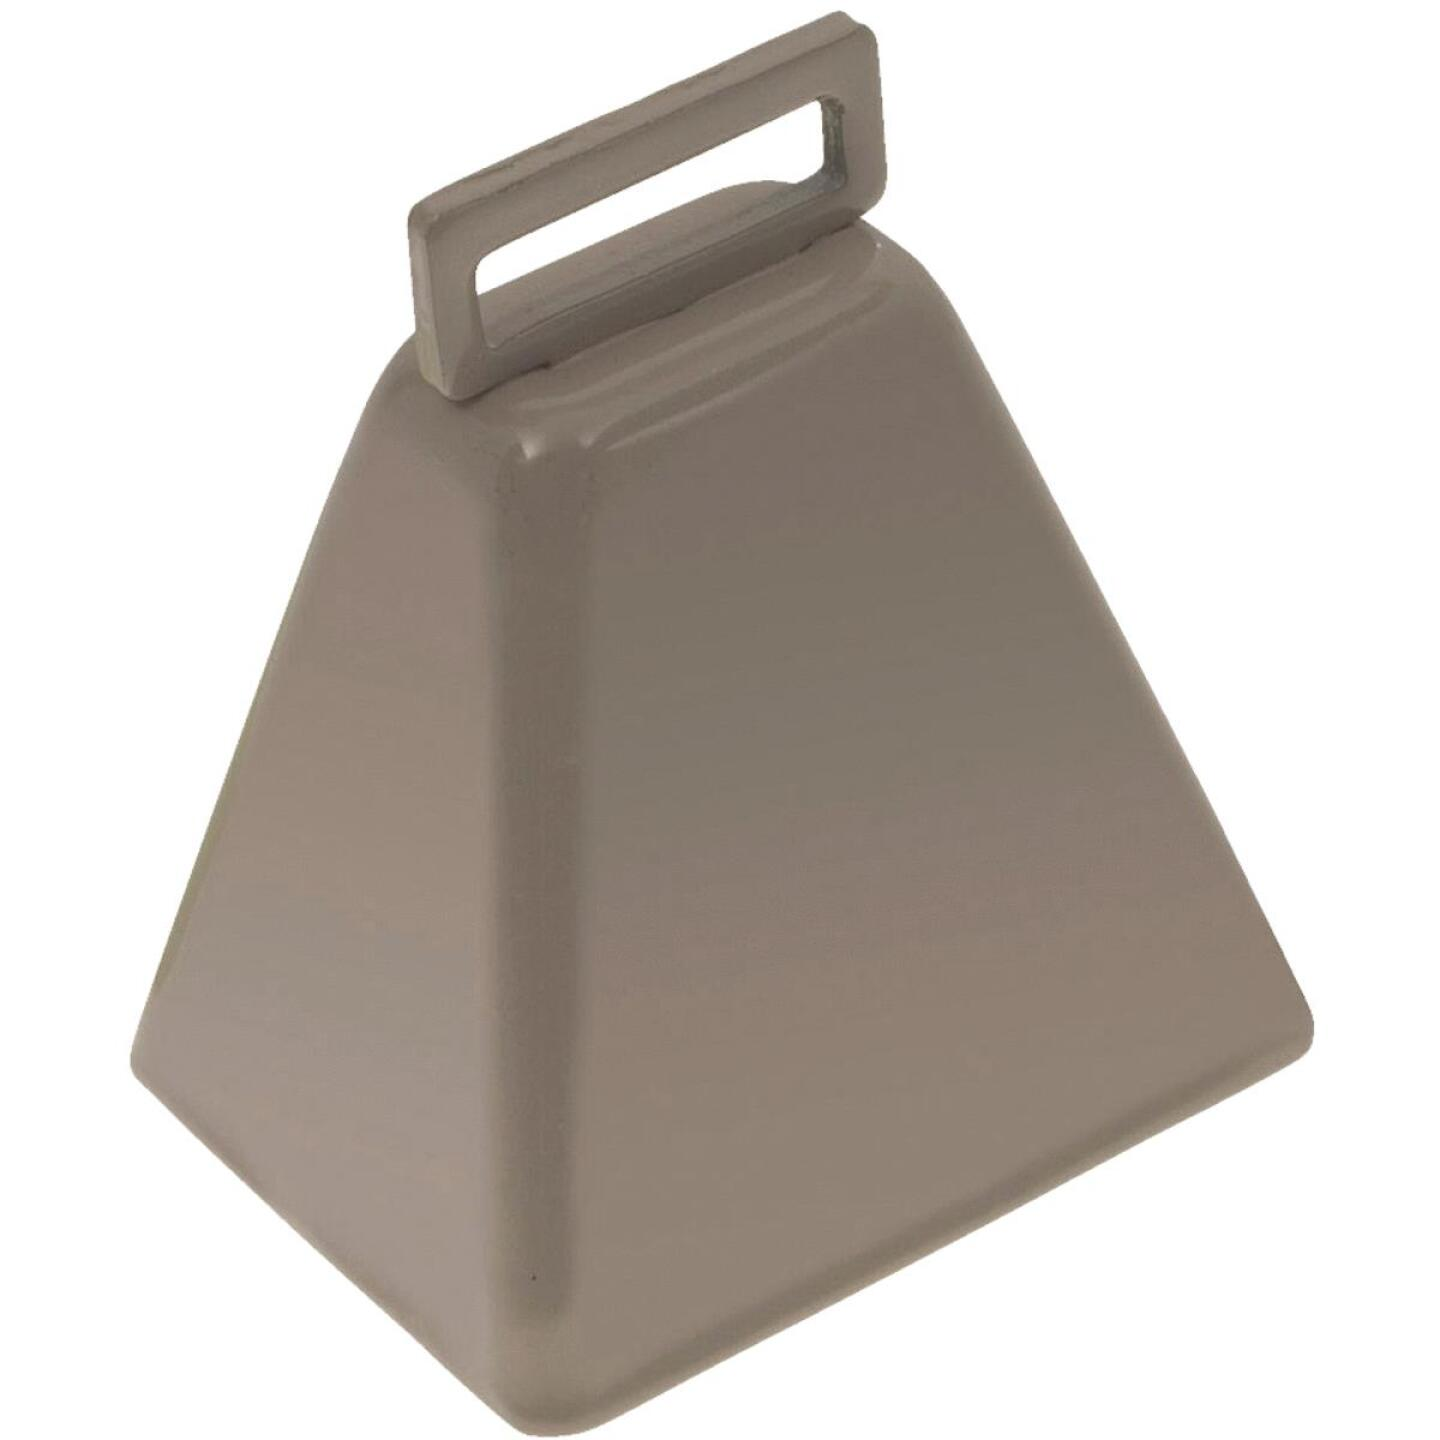 Speeco 2-13/16 In. Long Distance 10LD Cow Bell Image 1